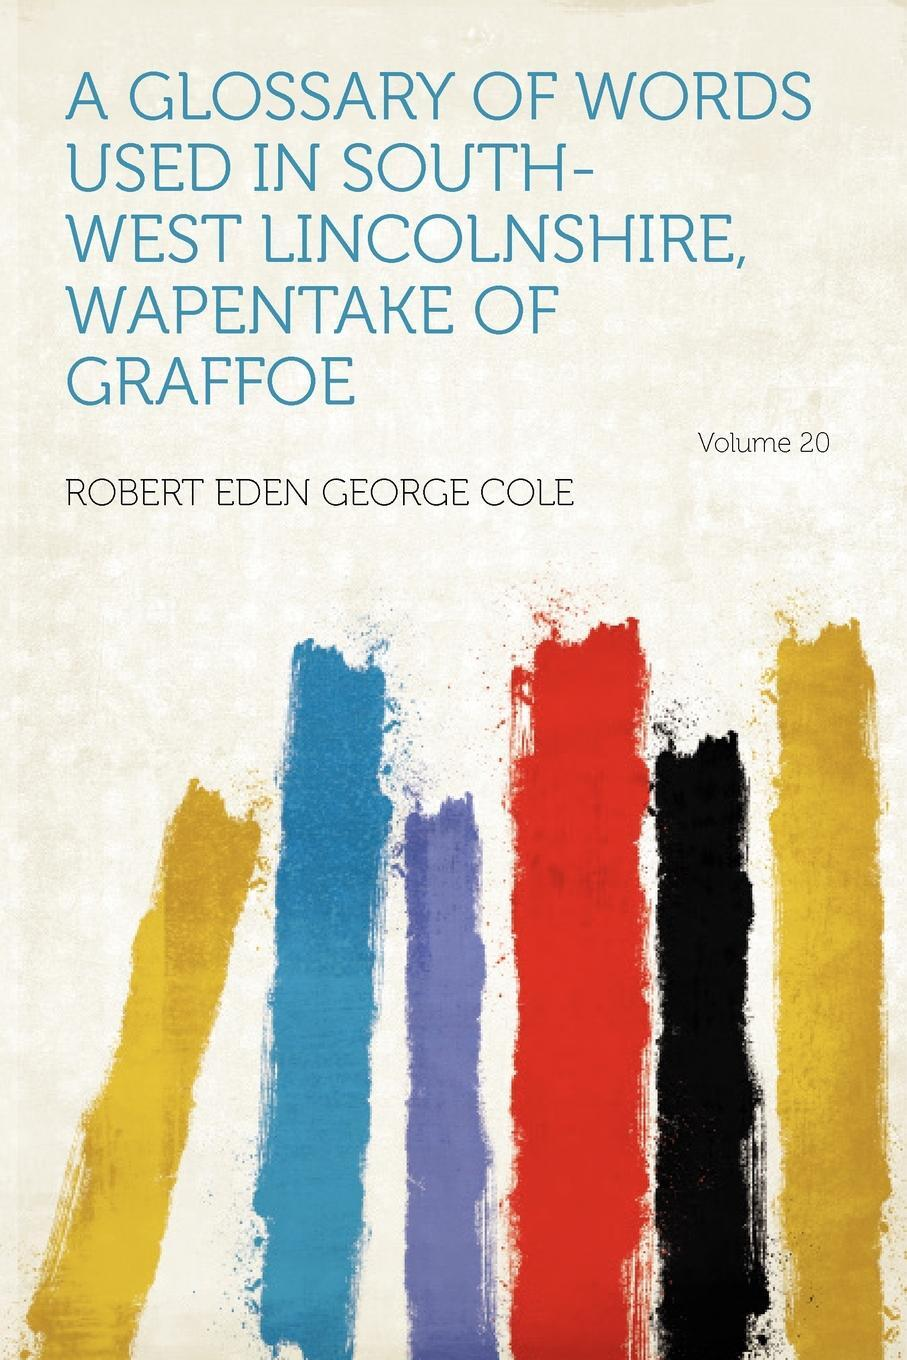 A Glossary of Words Used in South-West Lincolnshire, Wapentake of Graffoe Volume 20. Robert Eden George Cole